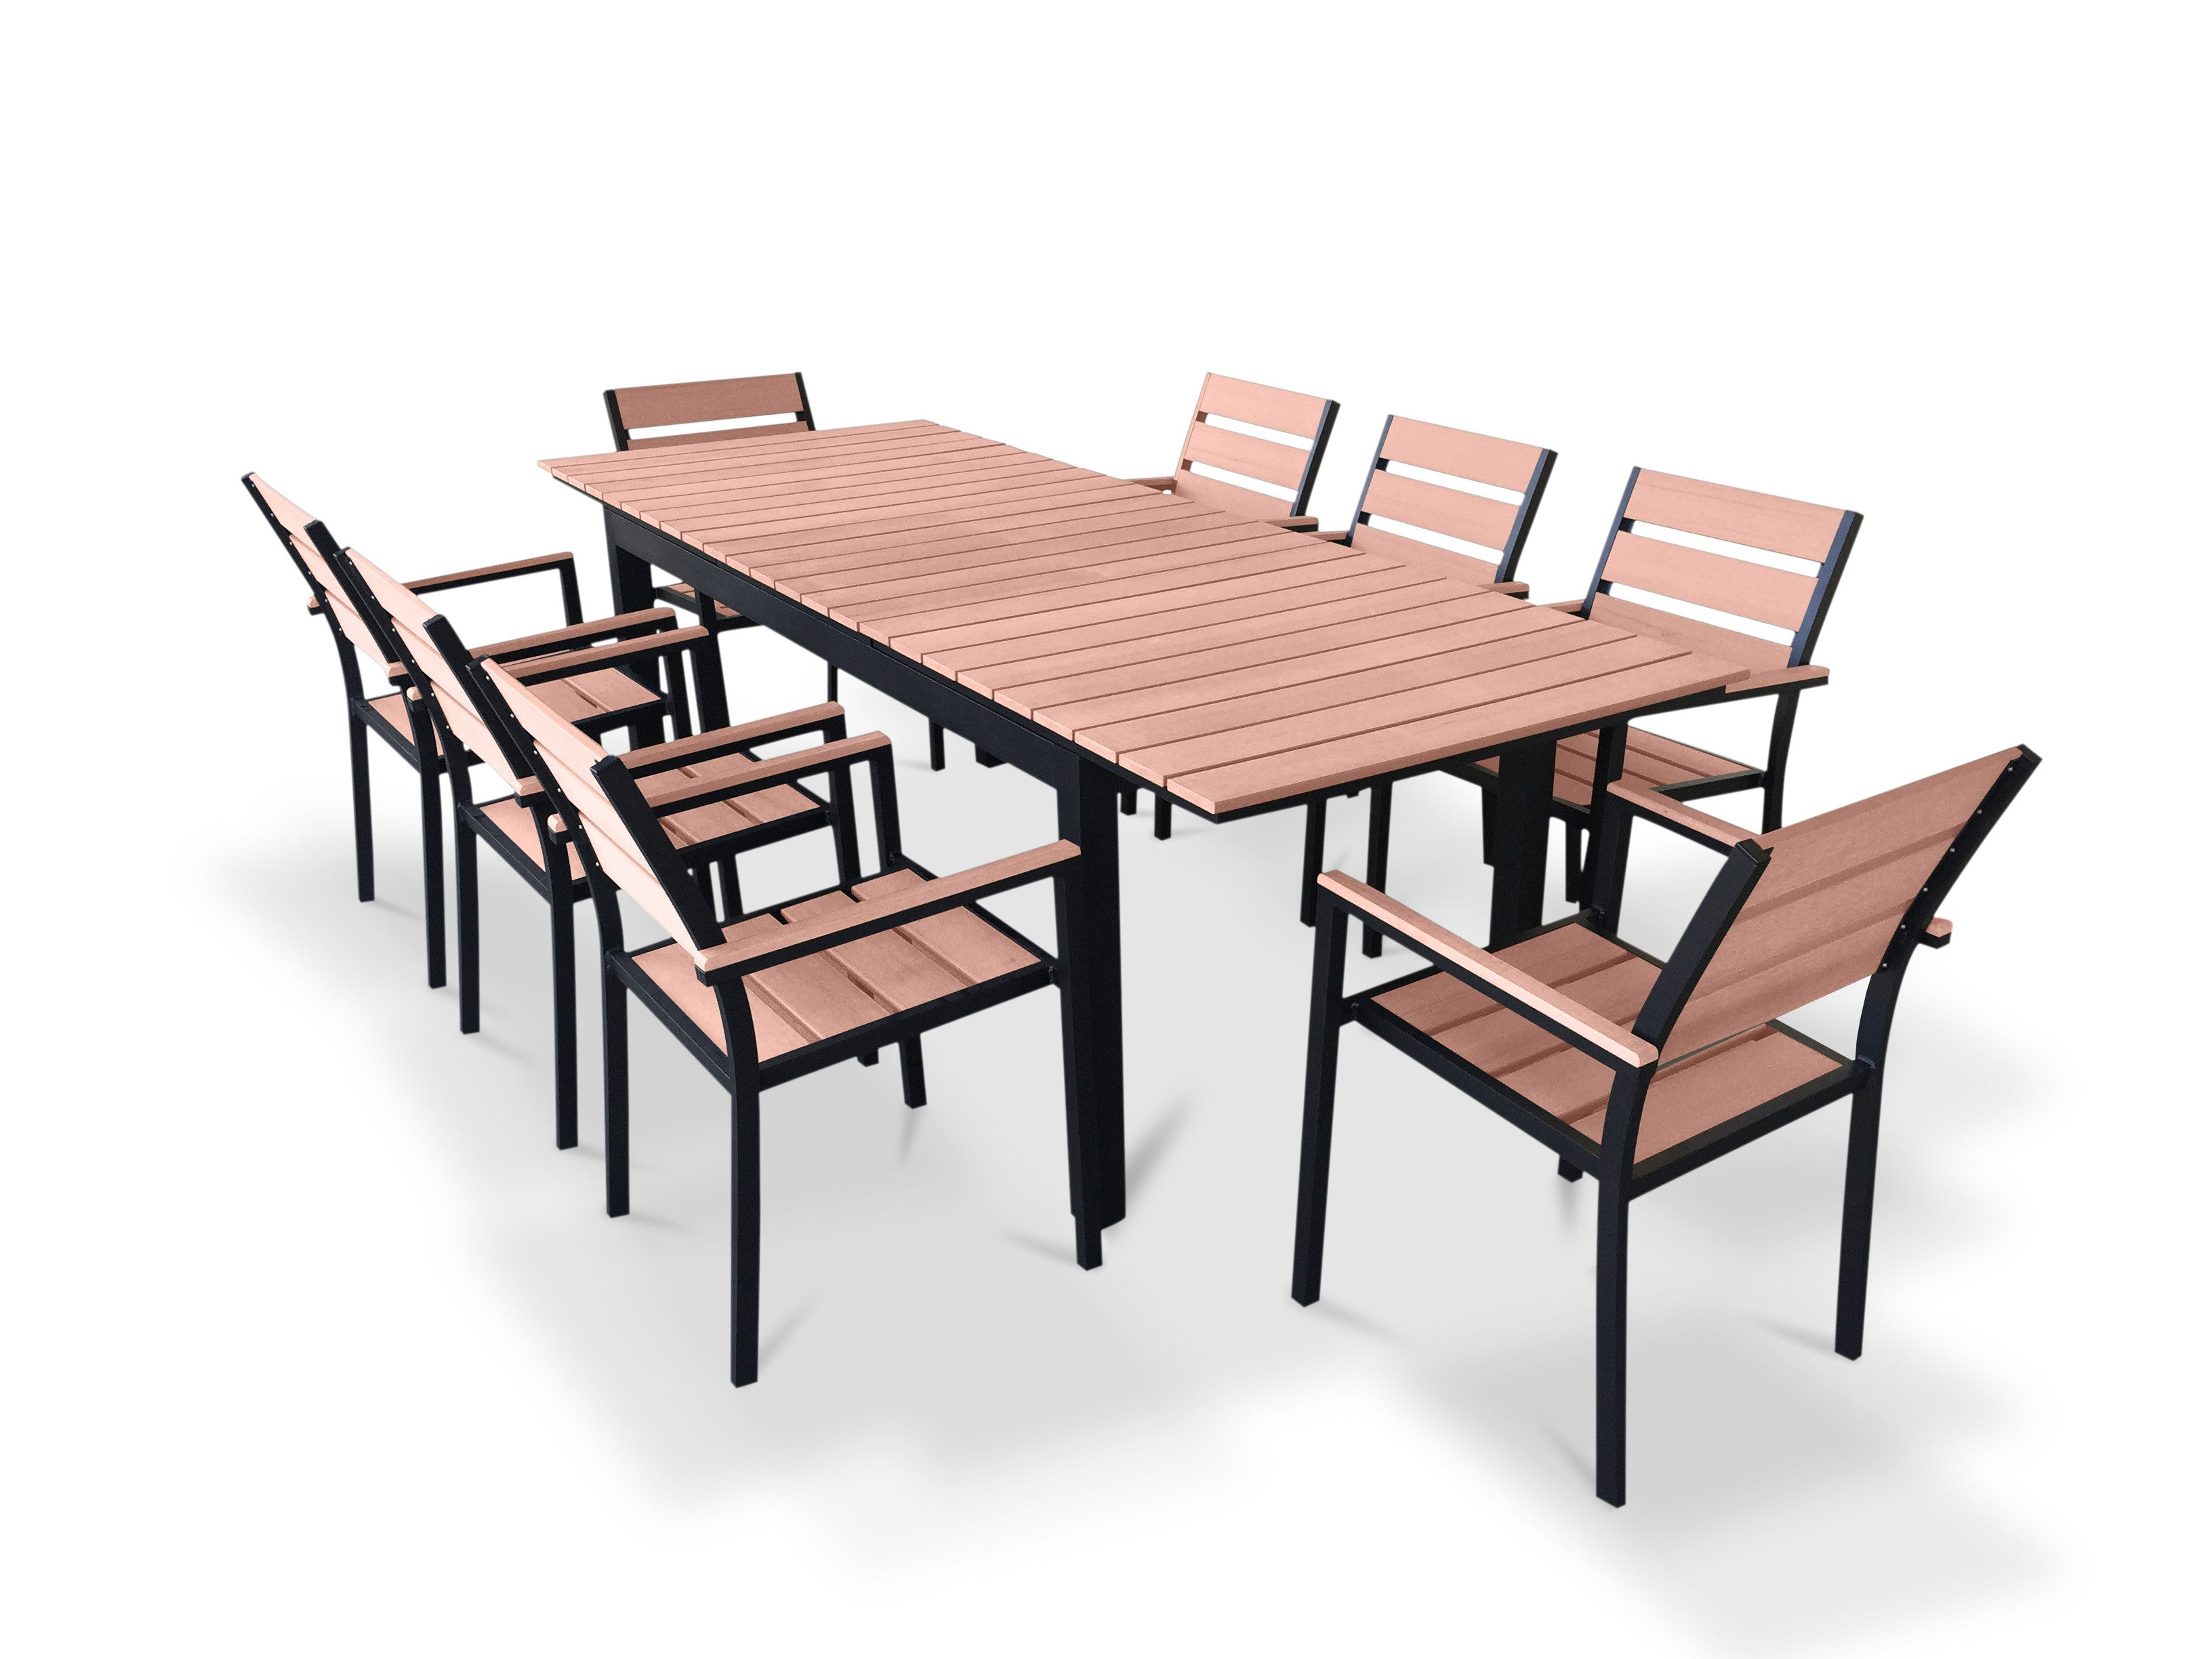 9 Piece Eco Wood Extendable Outdoor Patio Dining Set   Weathered Brown